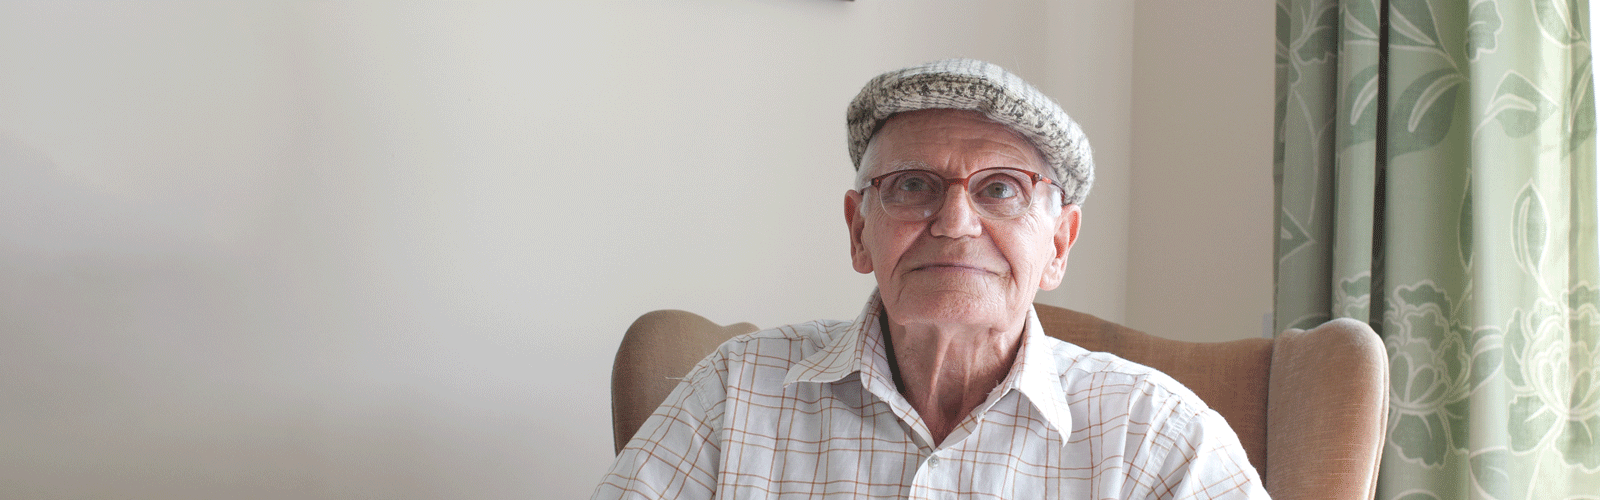 Man in glasses and flat cap sitting in armchair and looking at camera